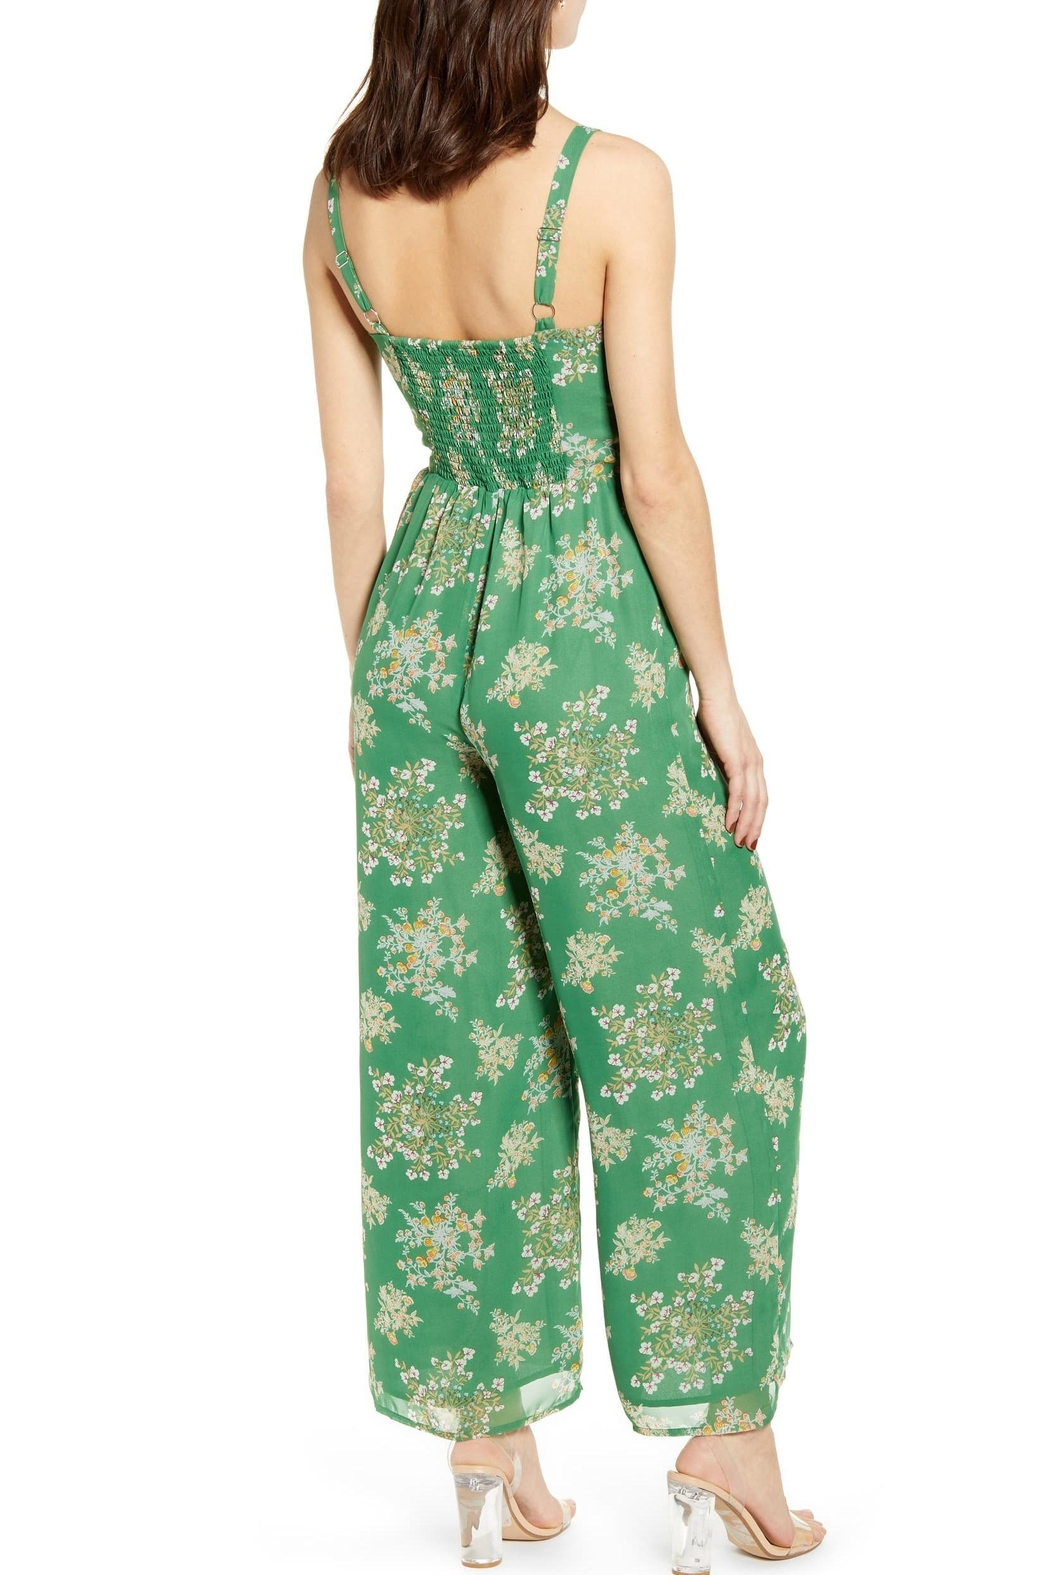 J.O.A. Floral Sleeveless Jumpsuit - Front Full Image